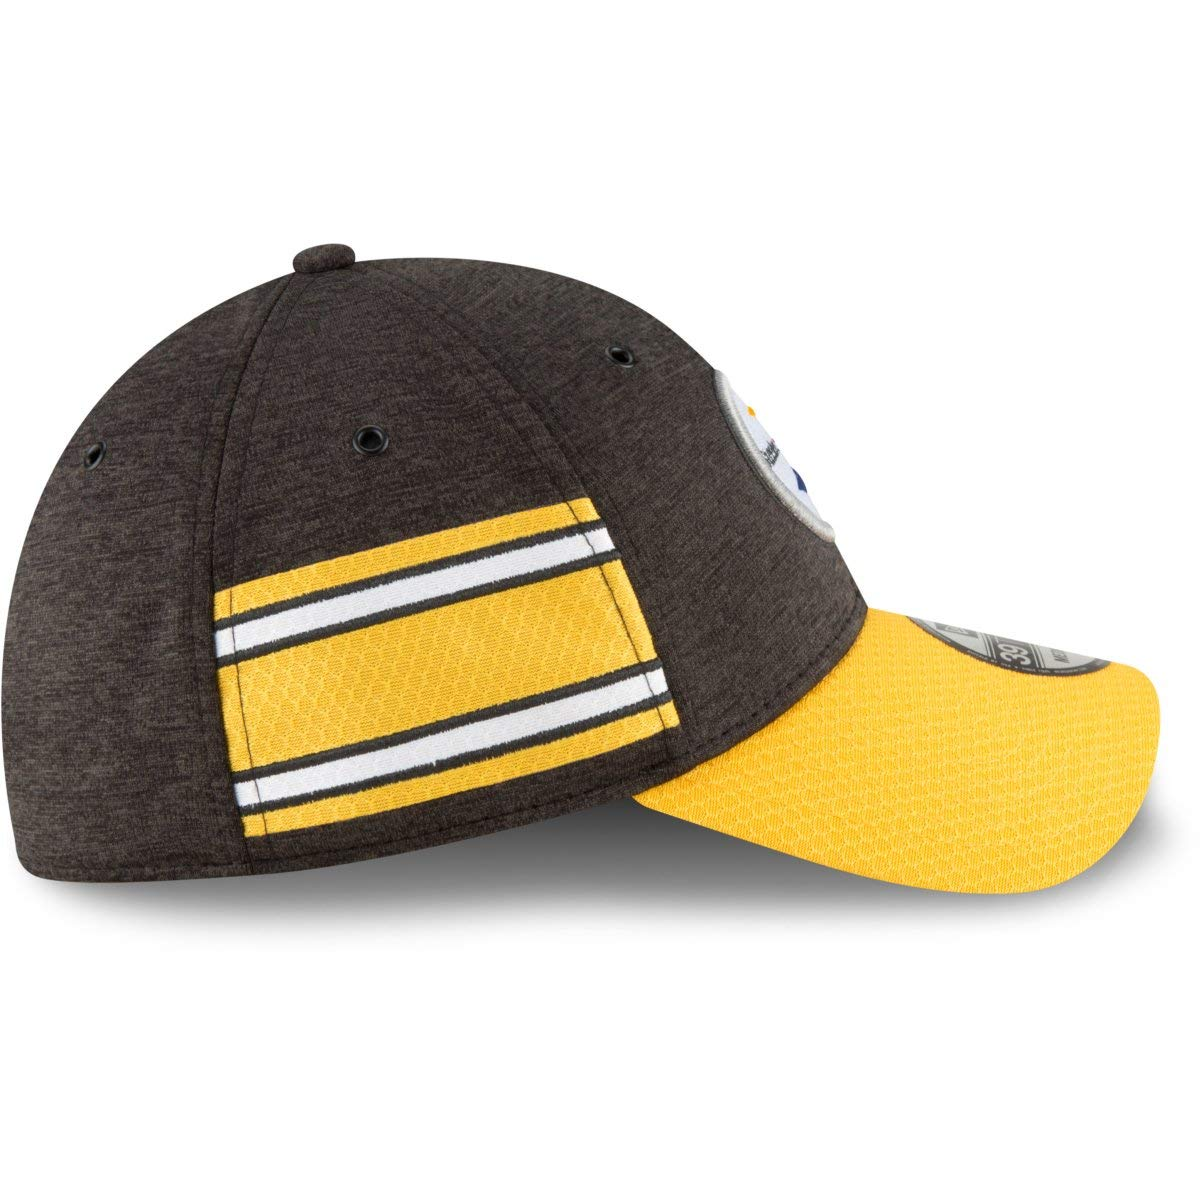 New Era 2018 39Thirty NFL Pittsburgh Steelers Sideline Home Hat Cap ... 2d5bceb83